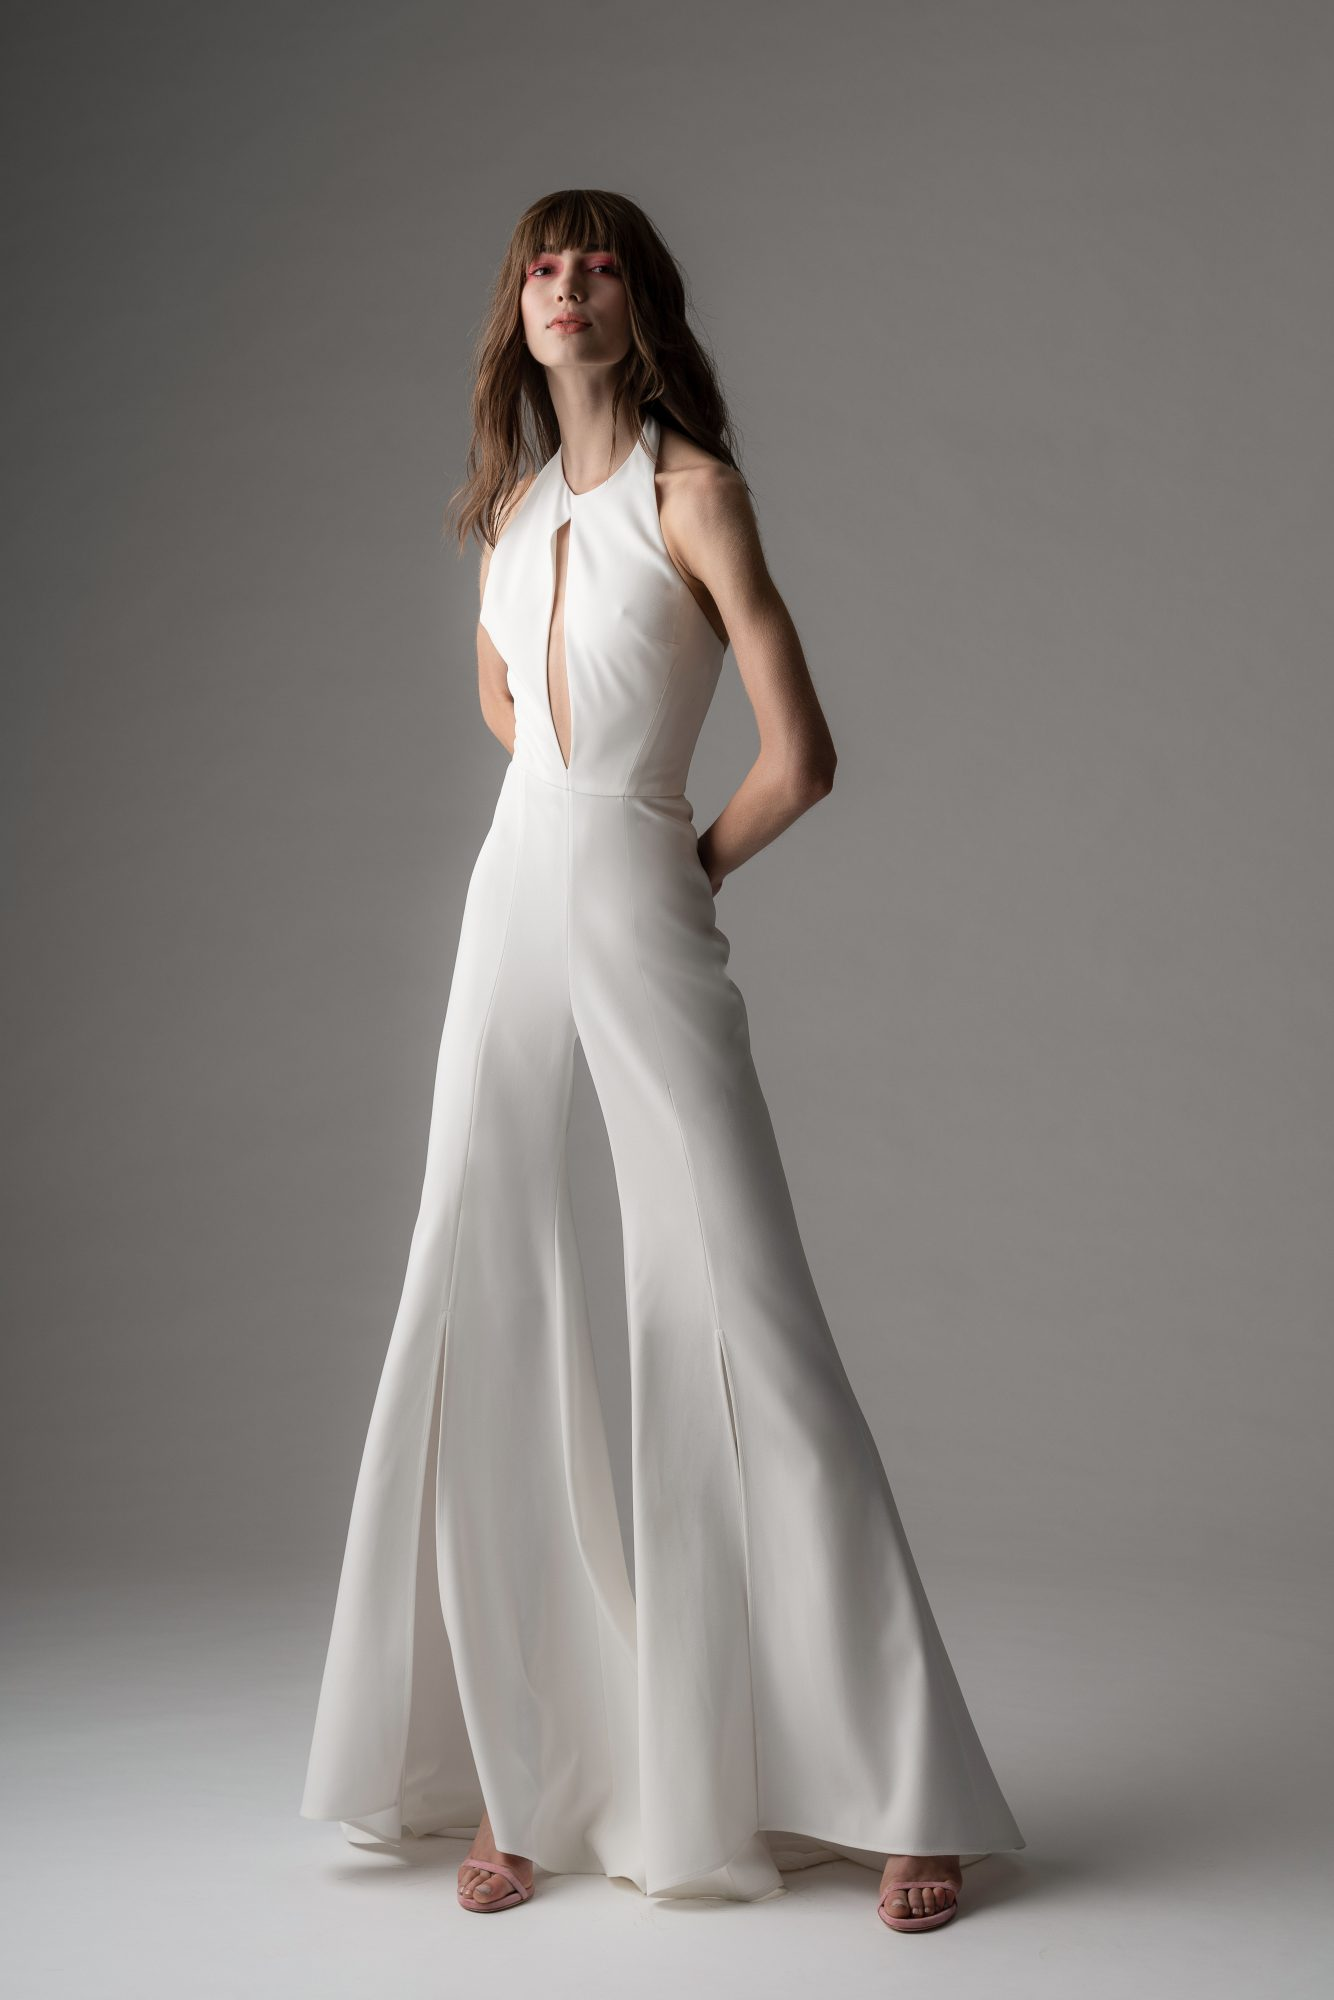 rivini by rita fall 2019 high neck jumpsuit wedding dress